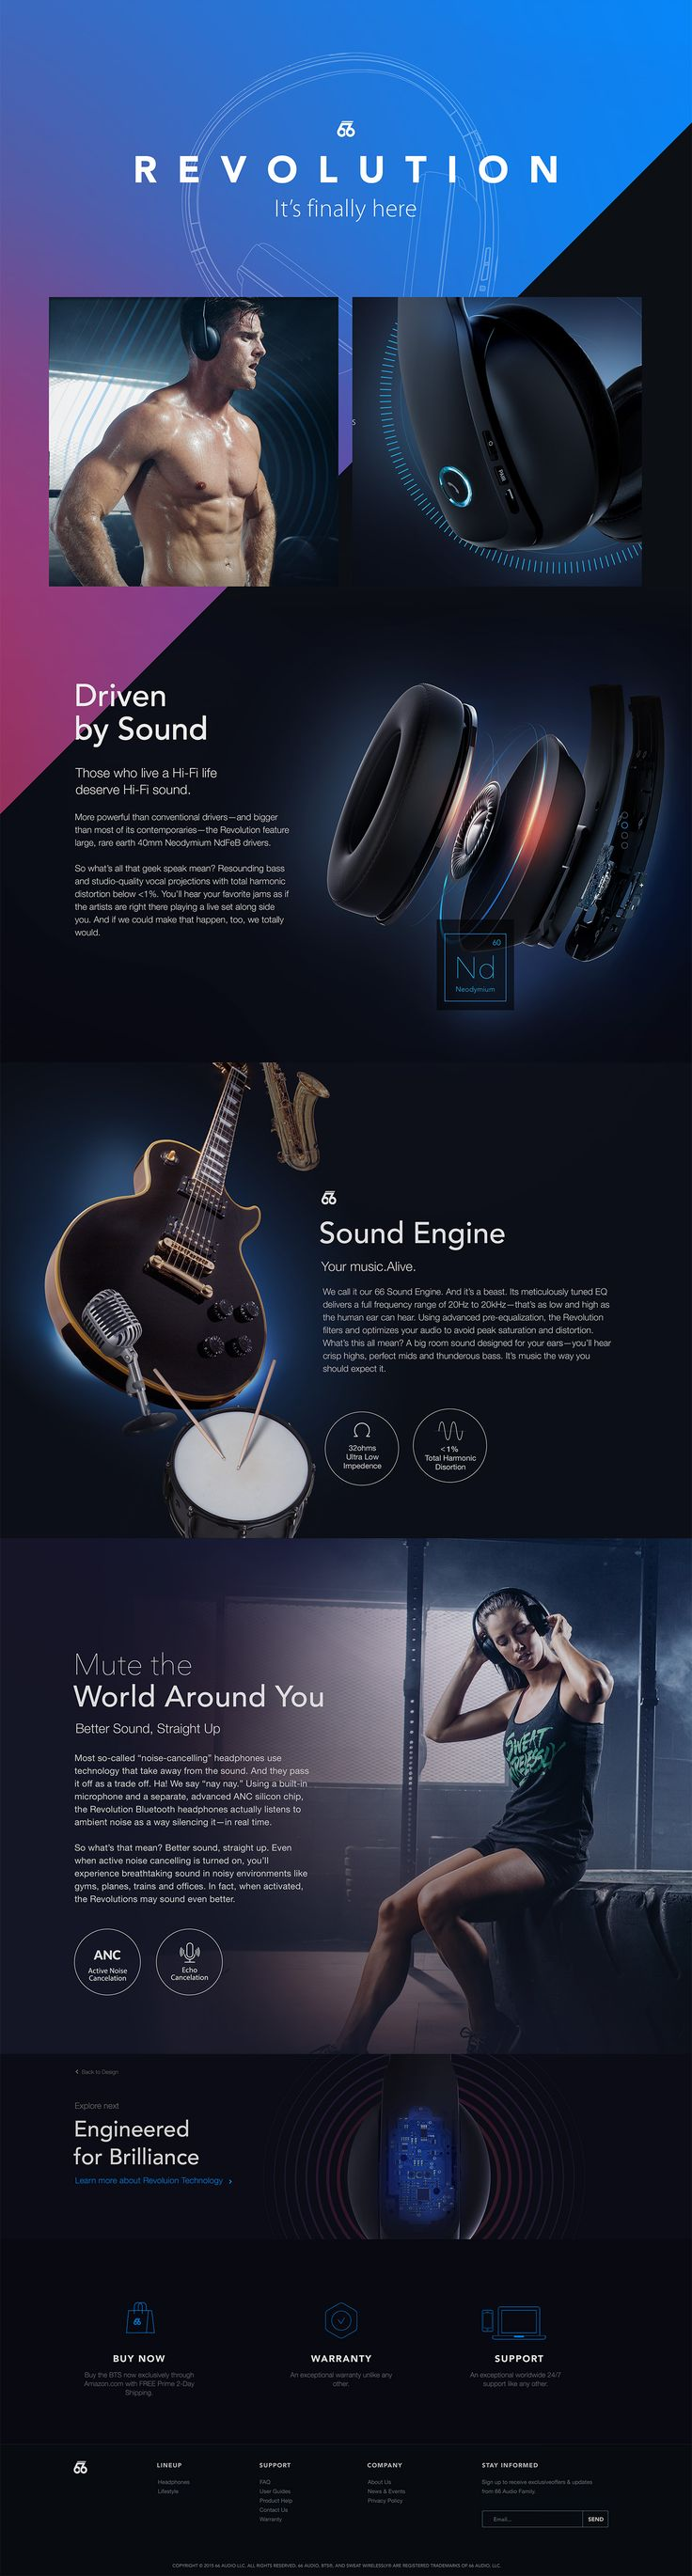 66AUDIO Site & Revolution Product Page Design on Behance